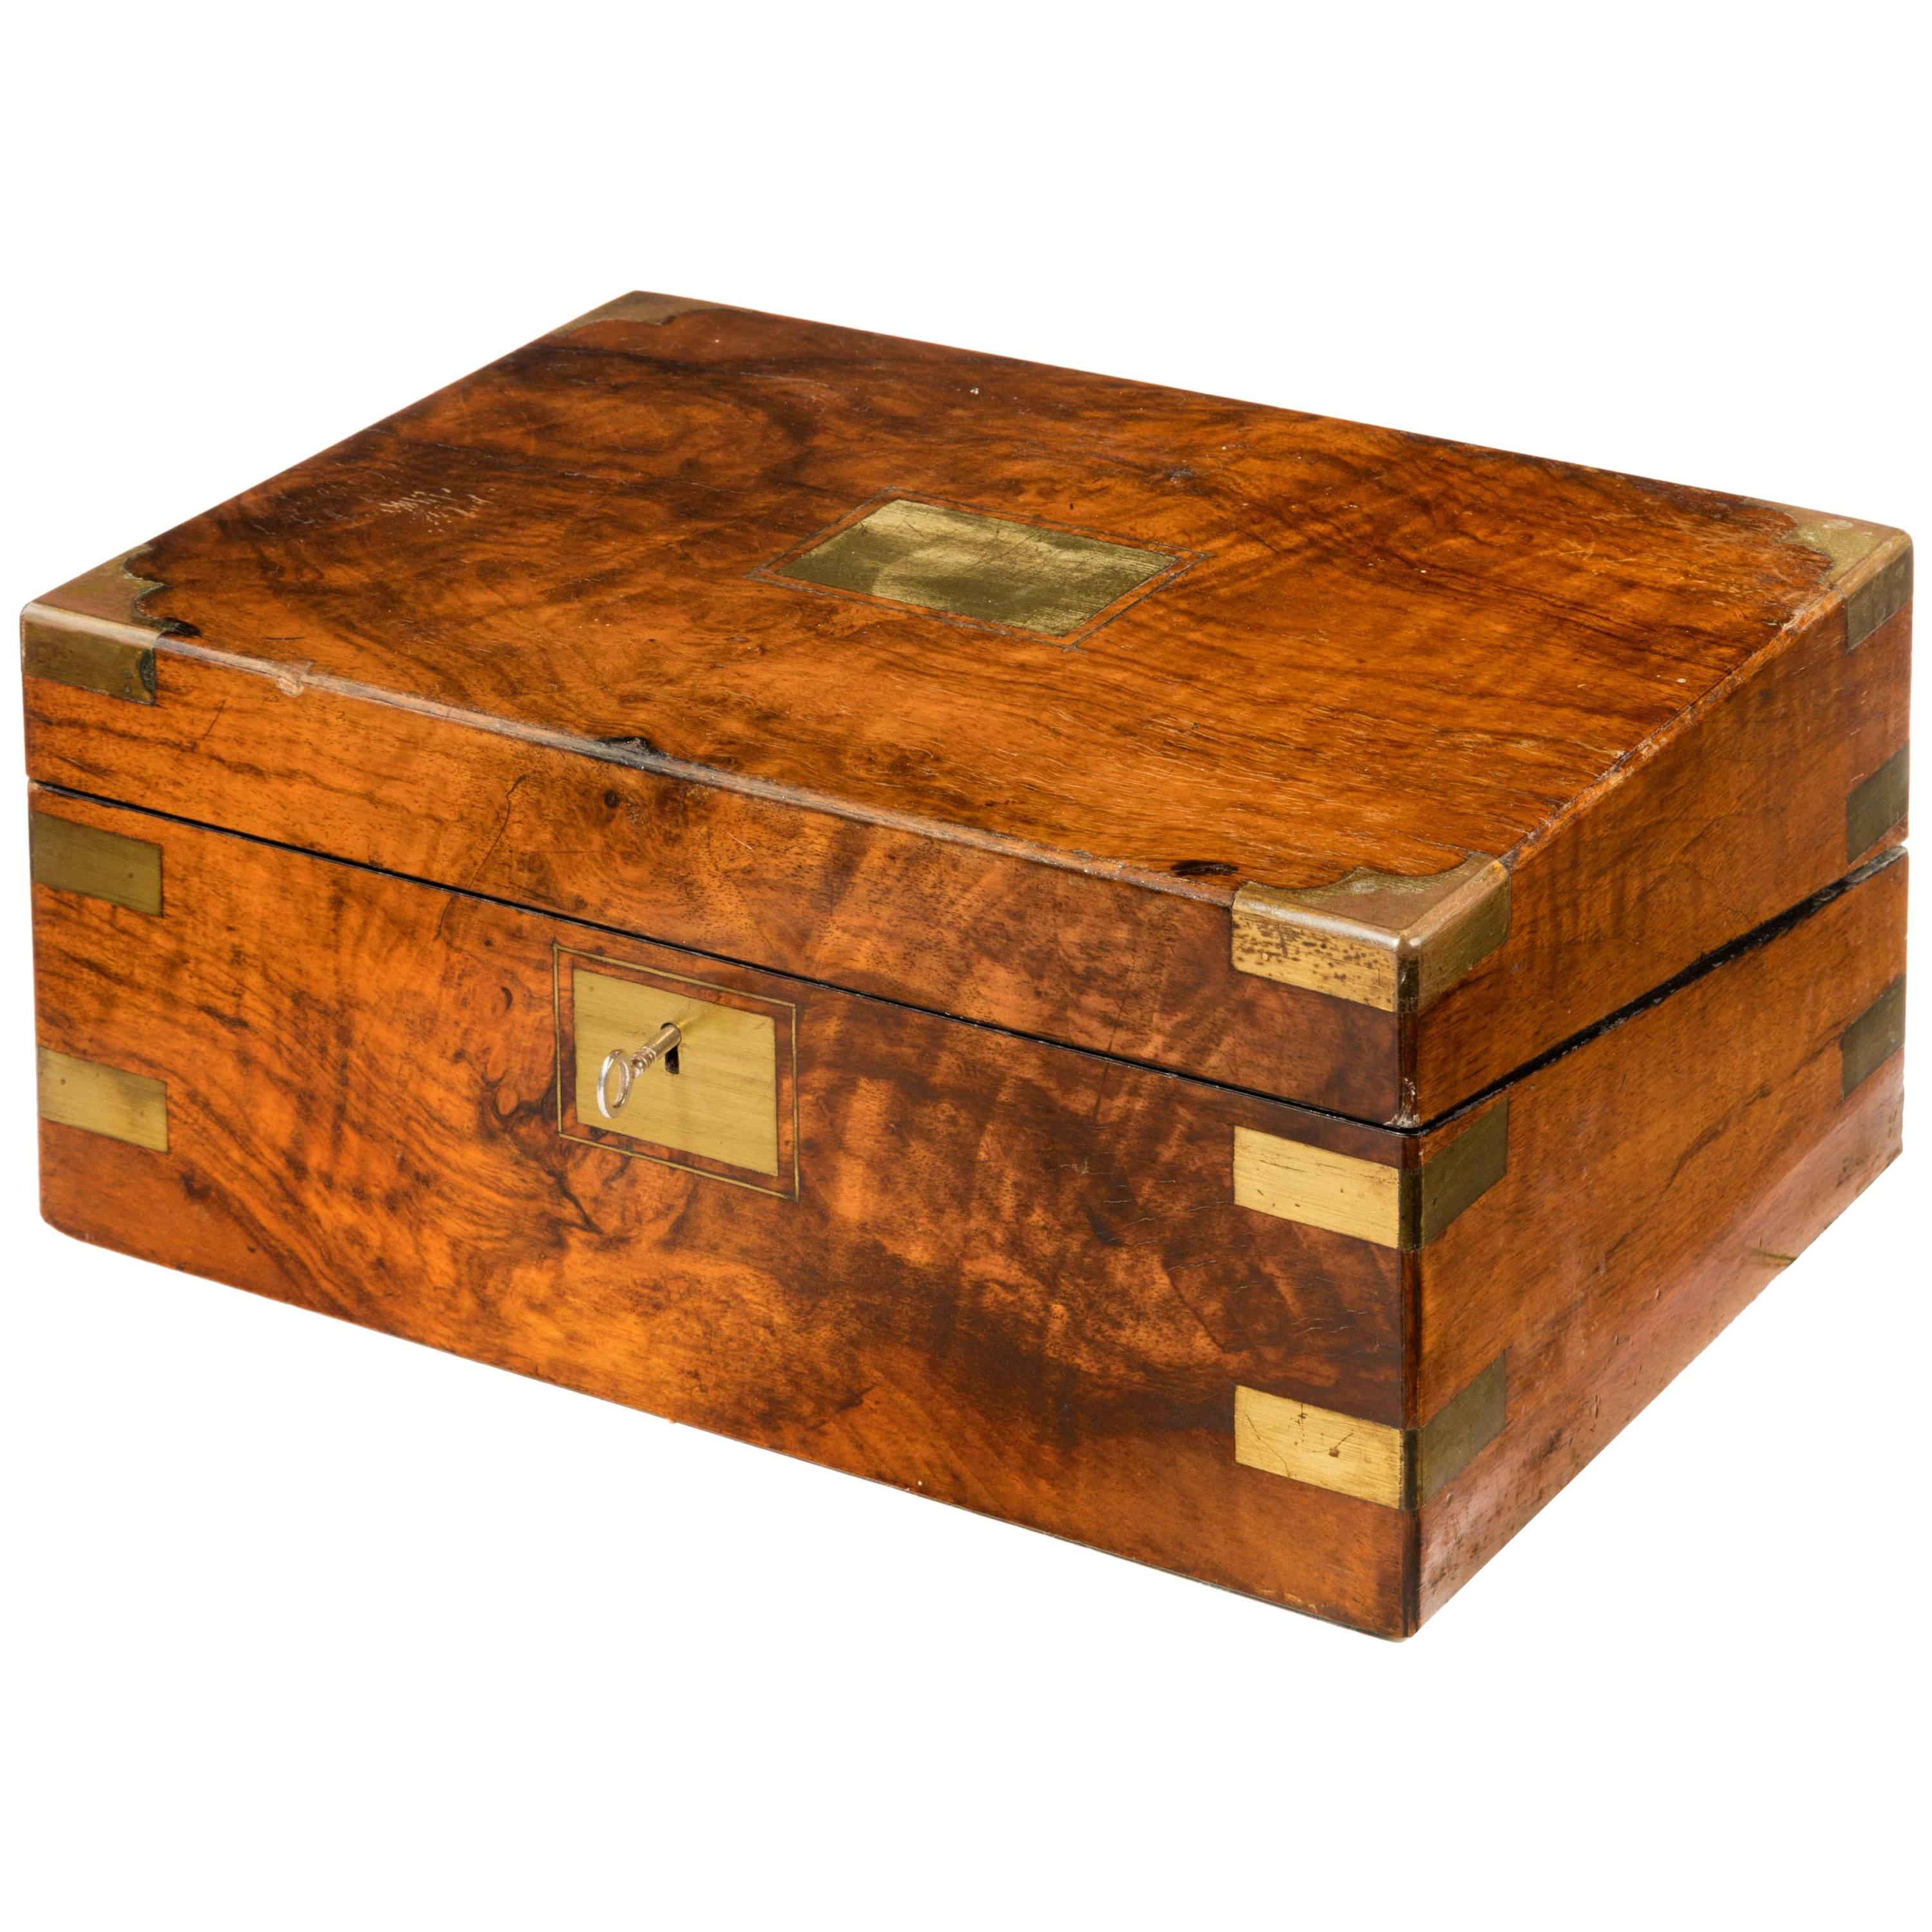 Boxes/chests Antiques Precise Vintage Wooden Writing Slope With Brass Corners And Escutcheon*